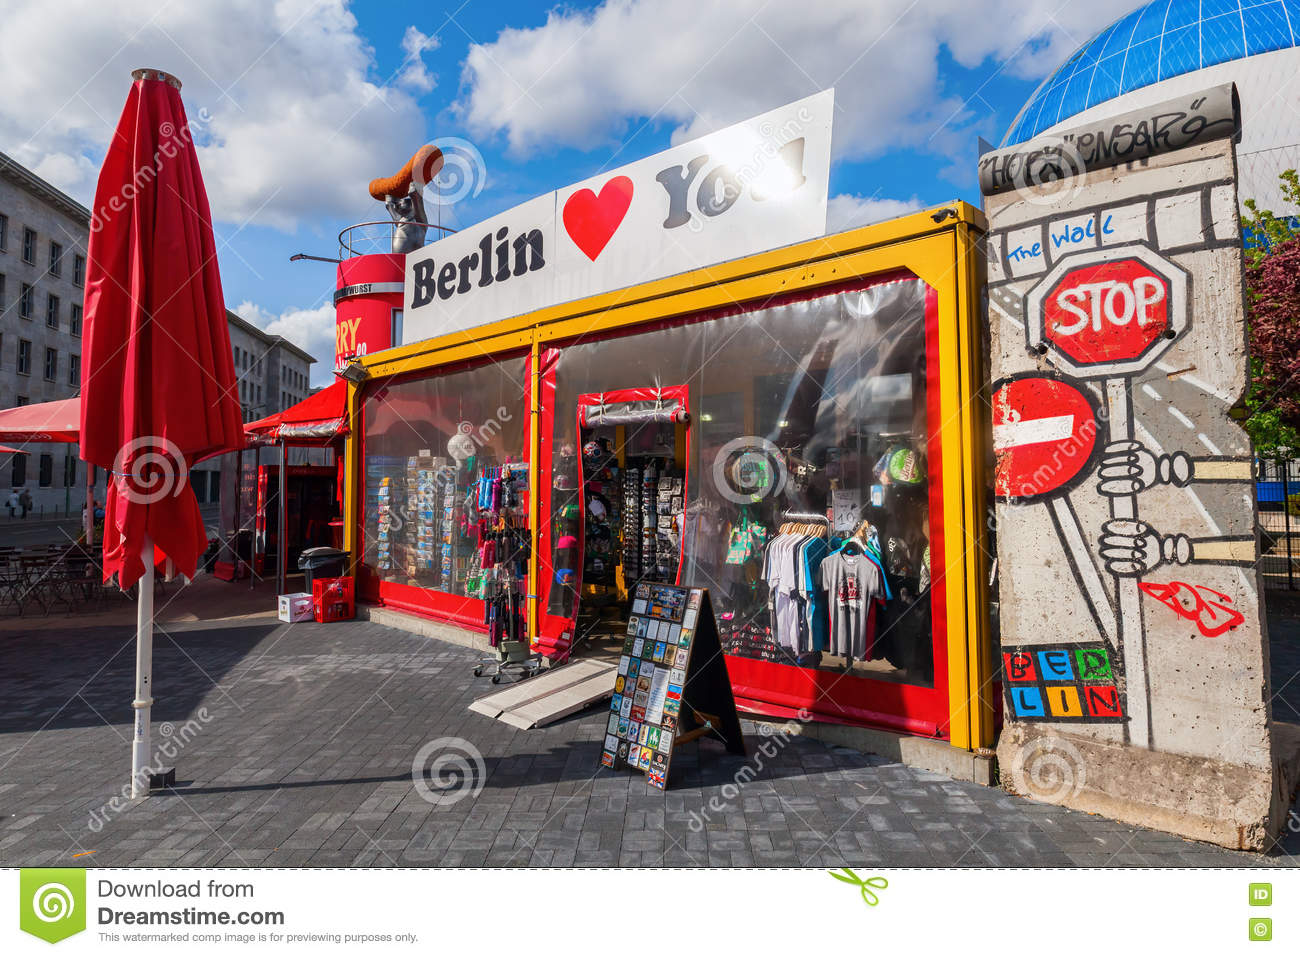 Shop Berlin souvenir shop in berlin germany editorial stock image image 72127284